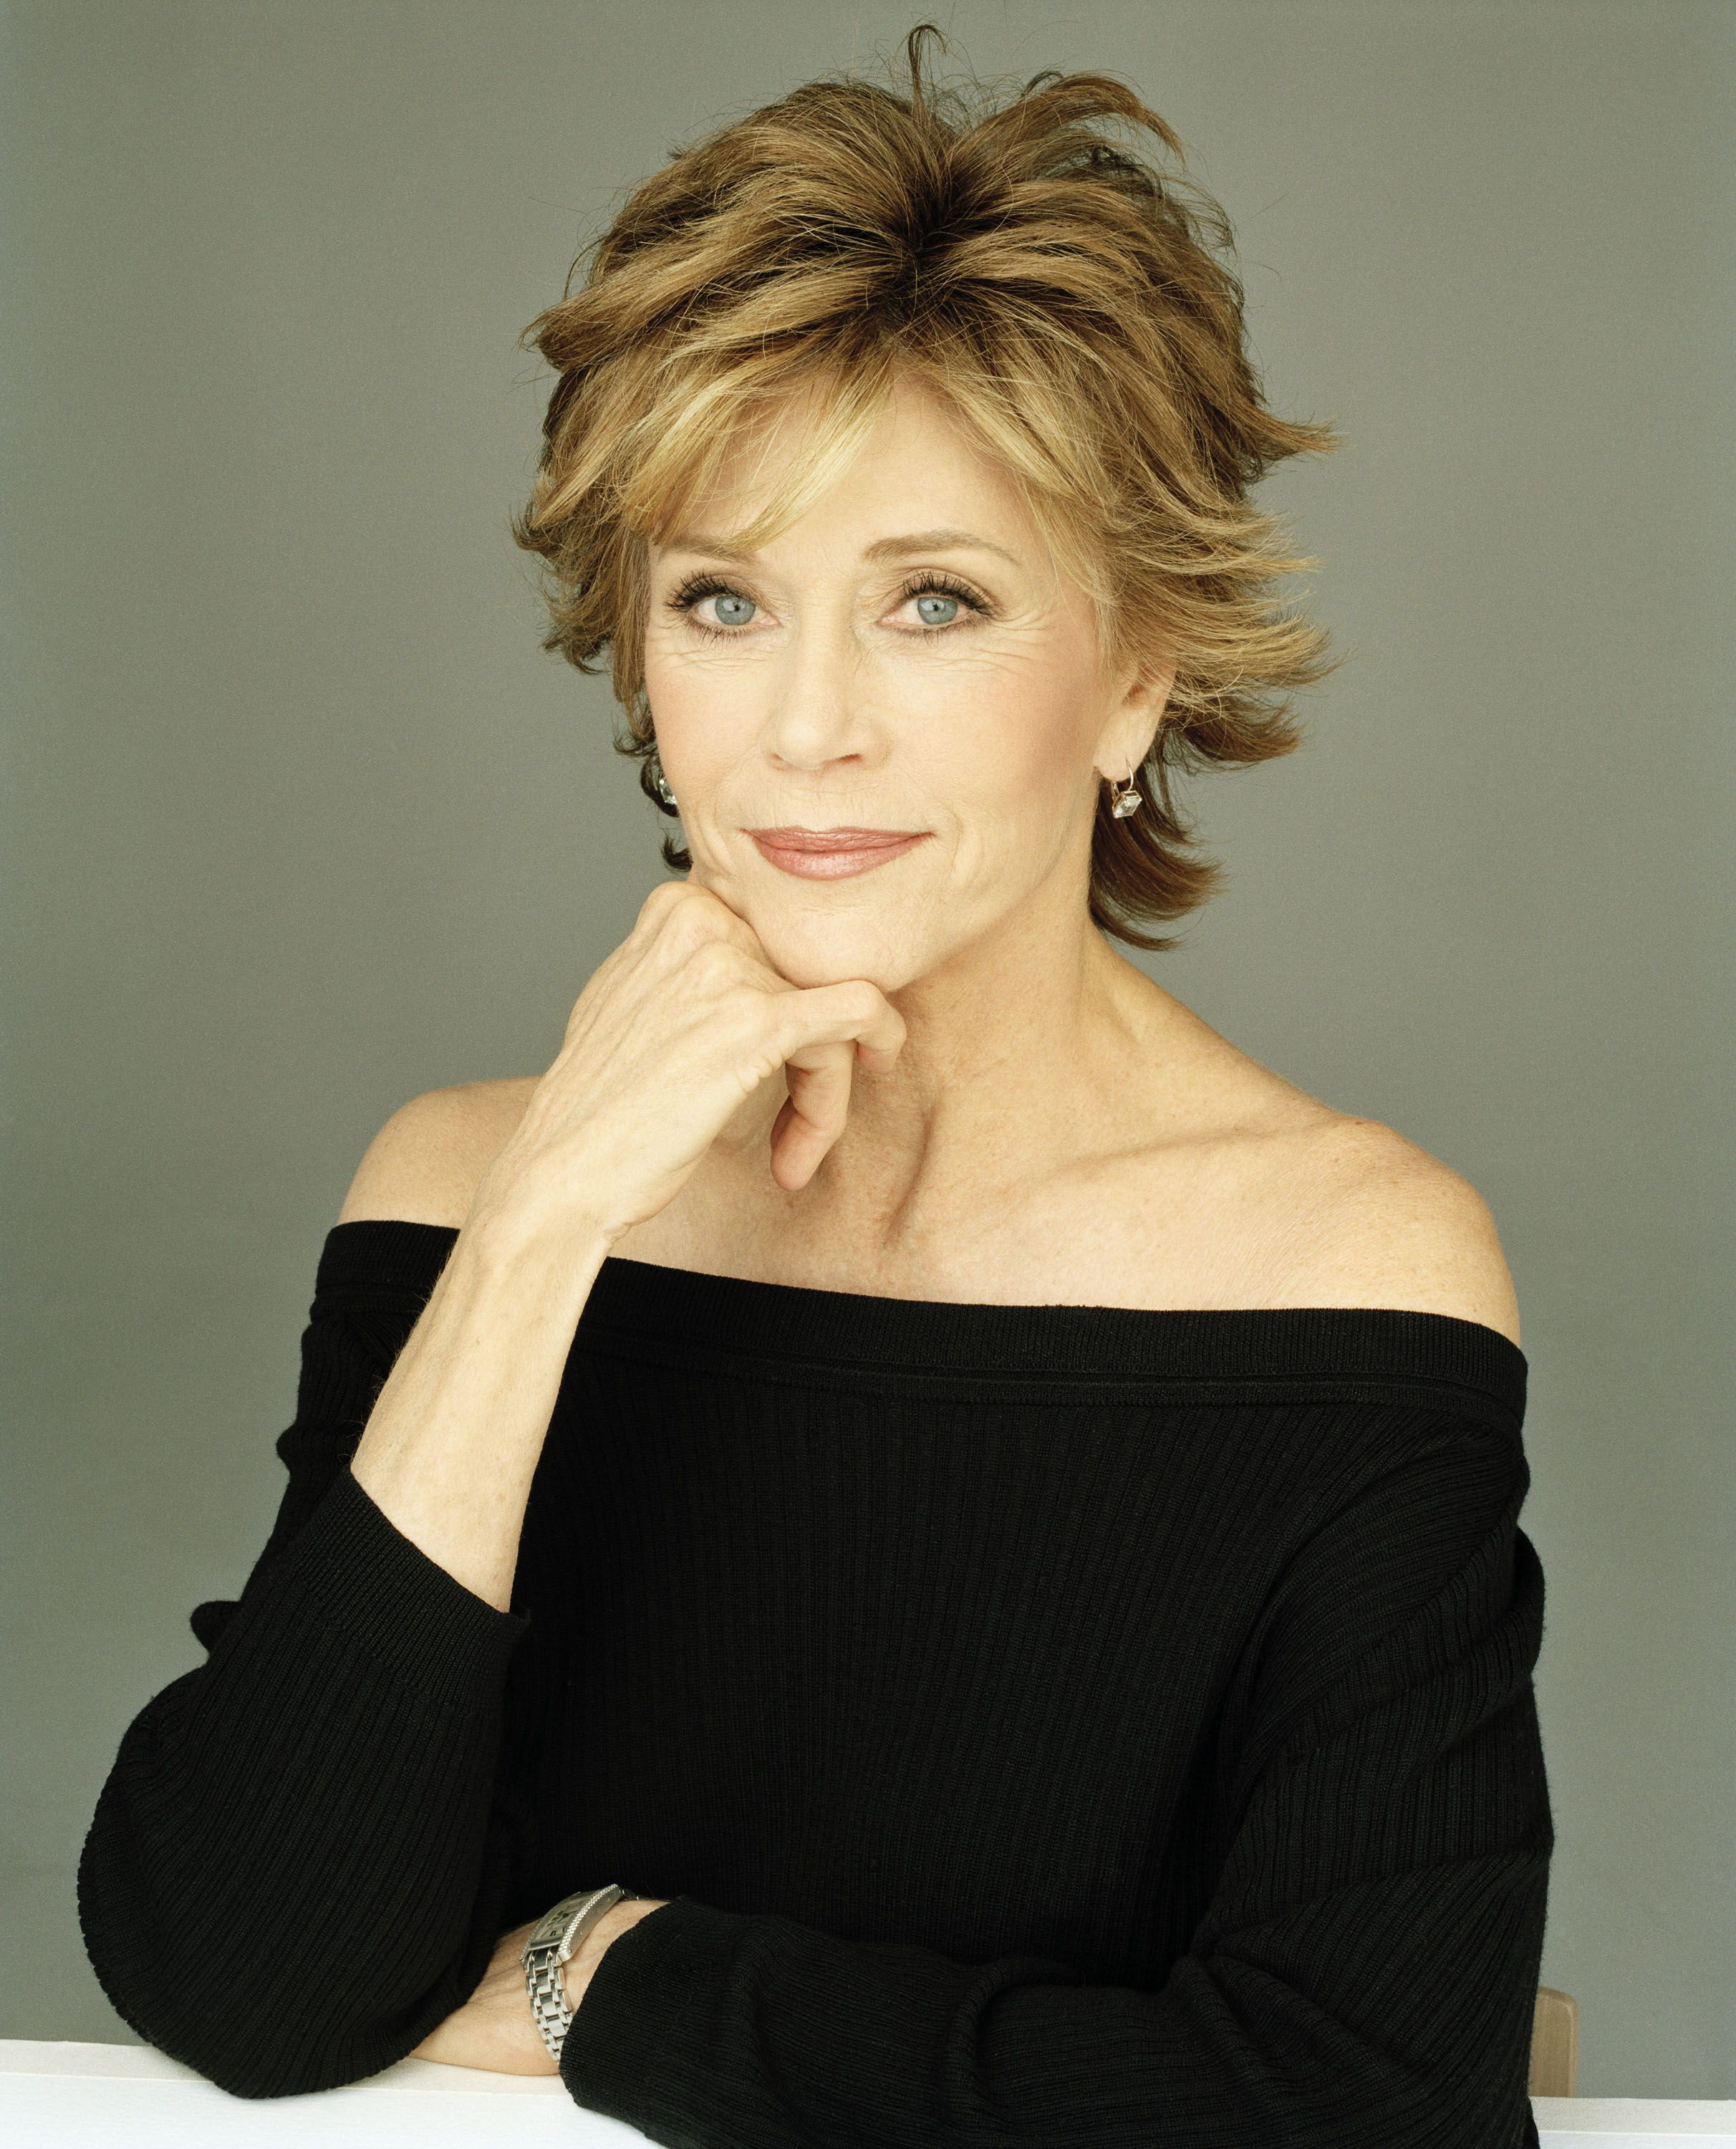 Jane Fonda beautiful ener ic inspiring honest and wise